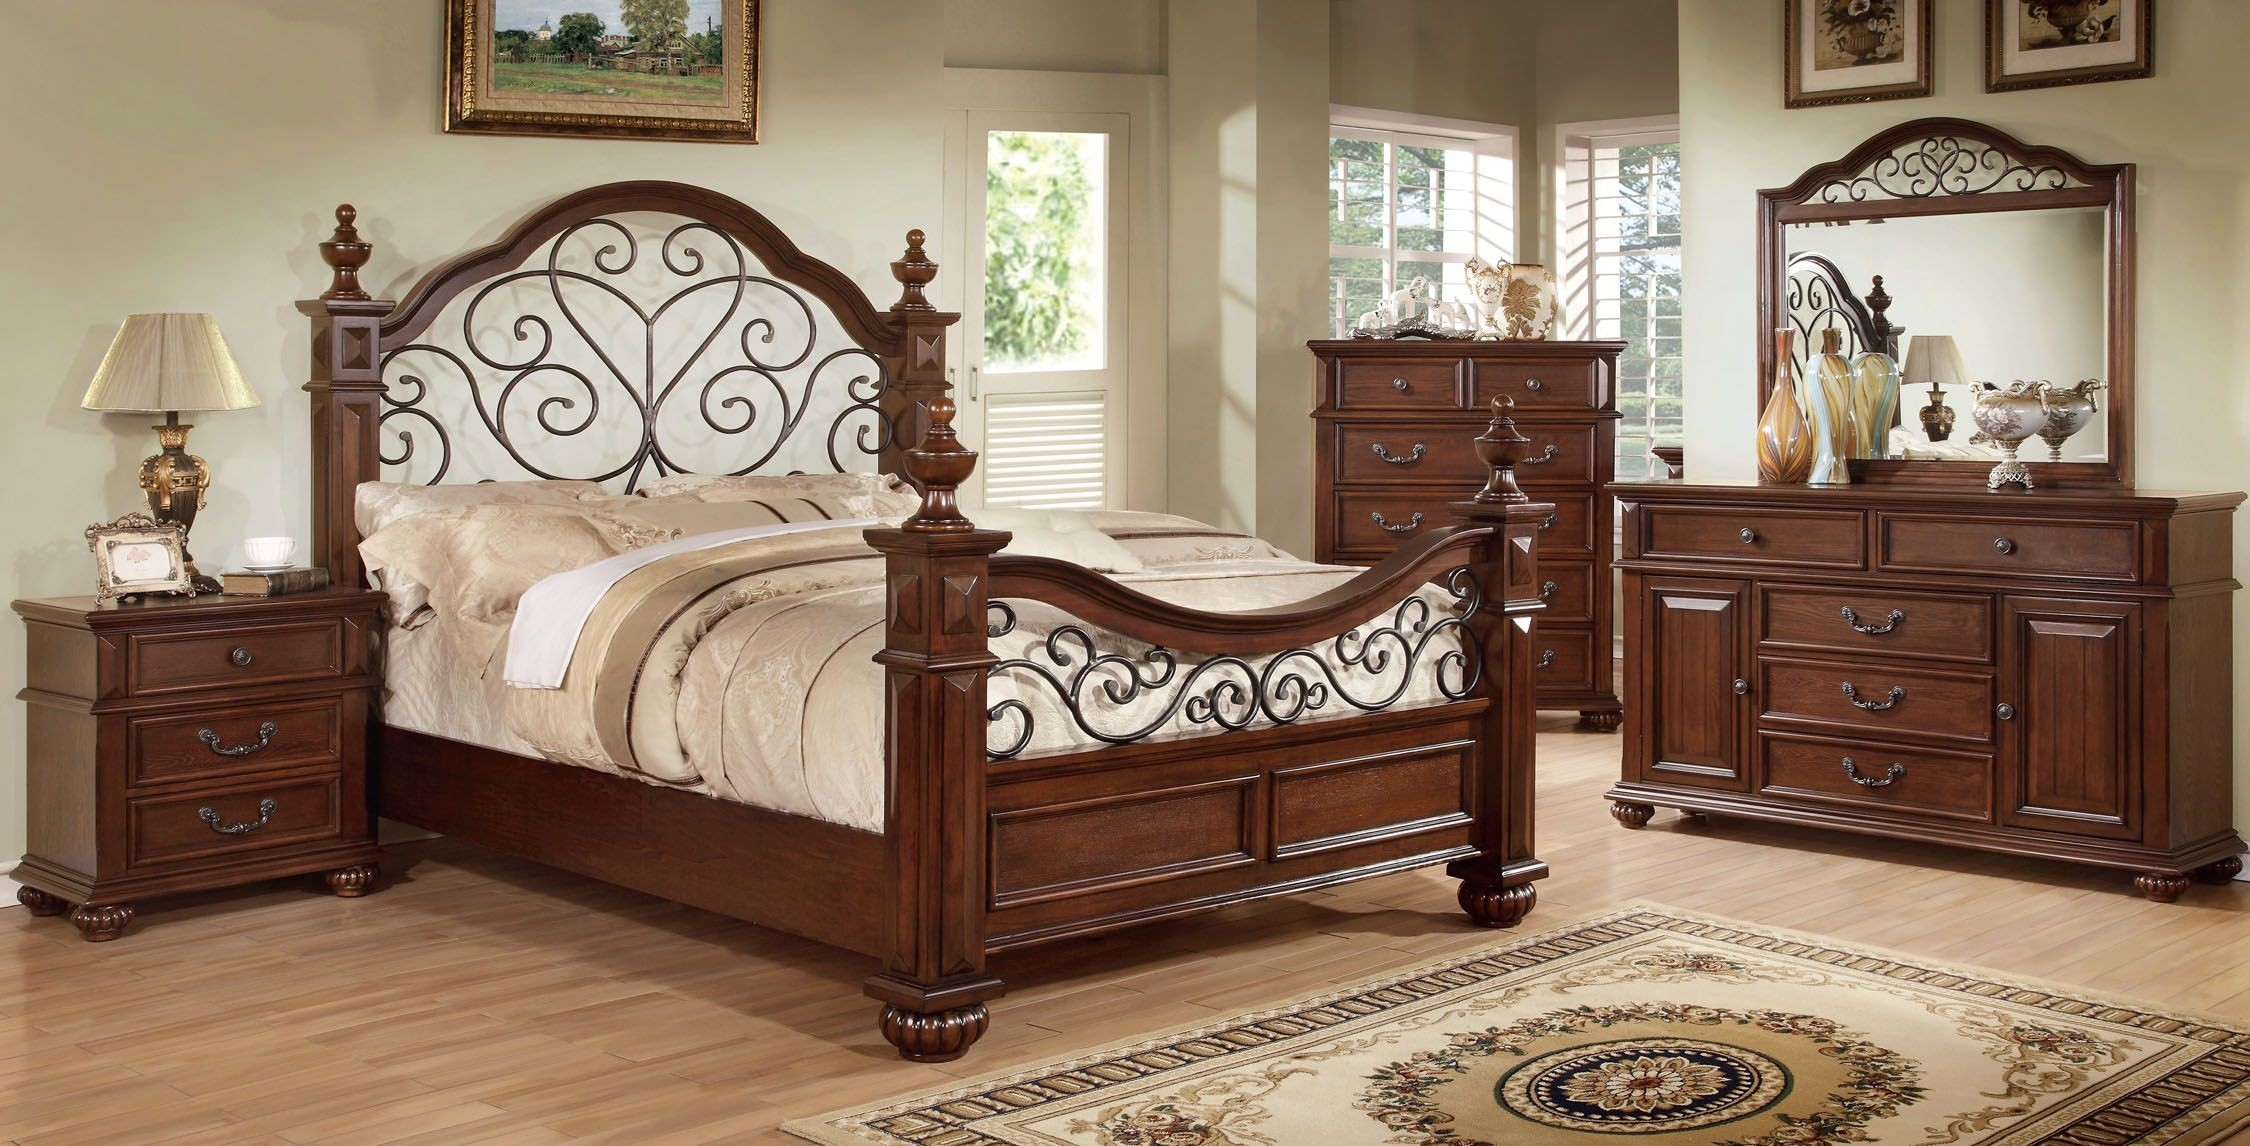 Lorrenzia Four Poster Bedroom Collection